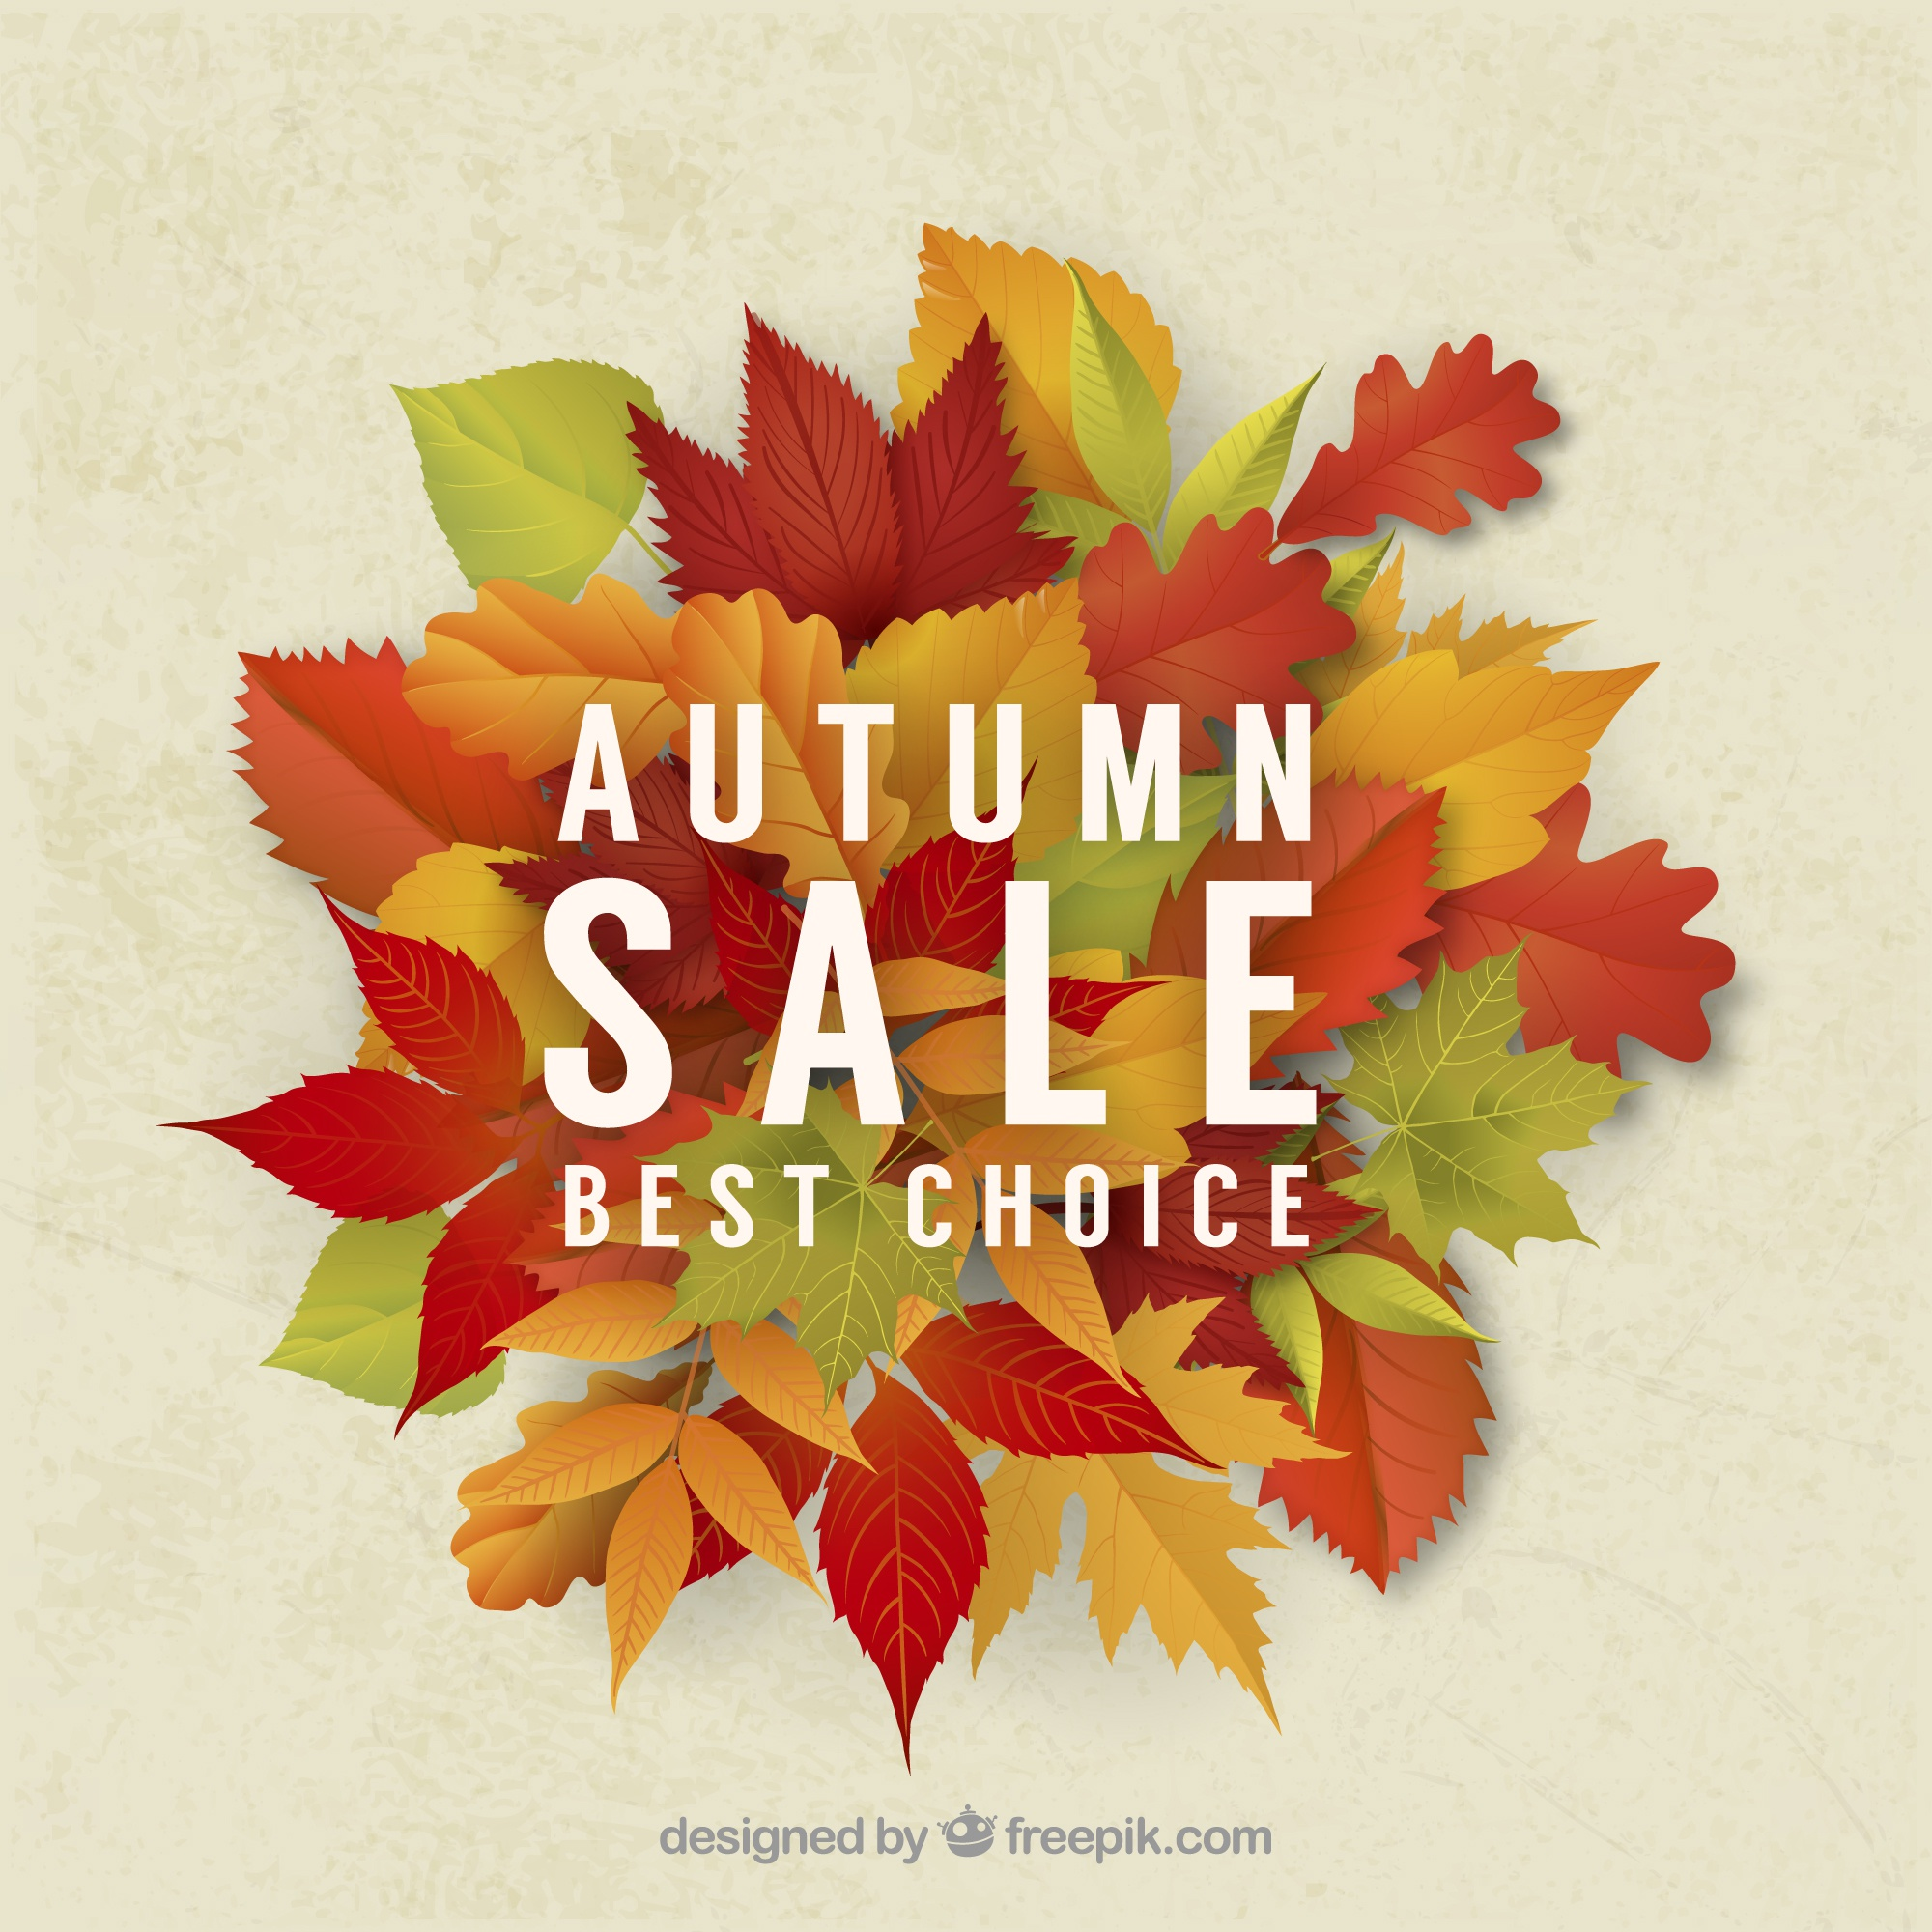 Autumn sale background of dry leaves